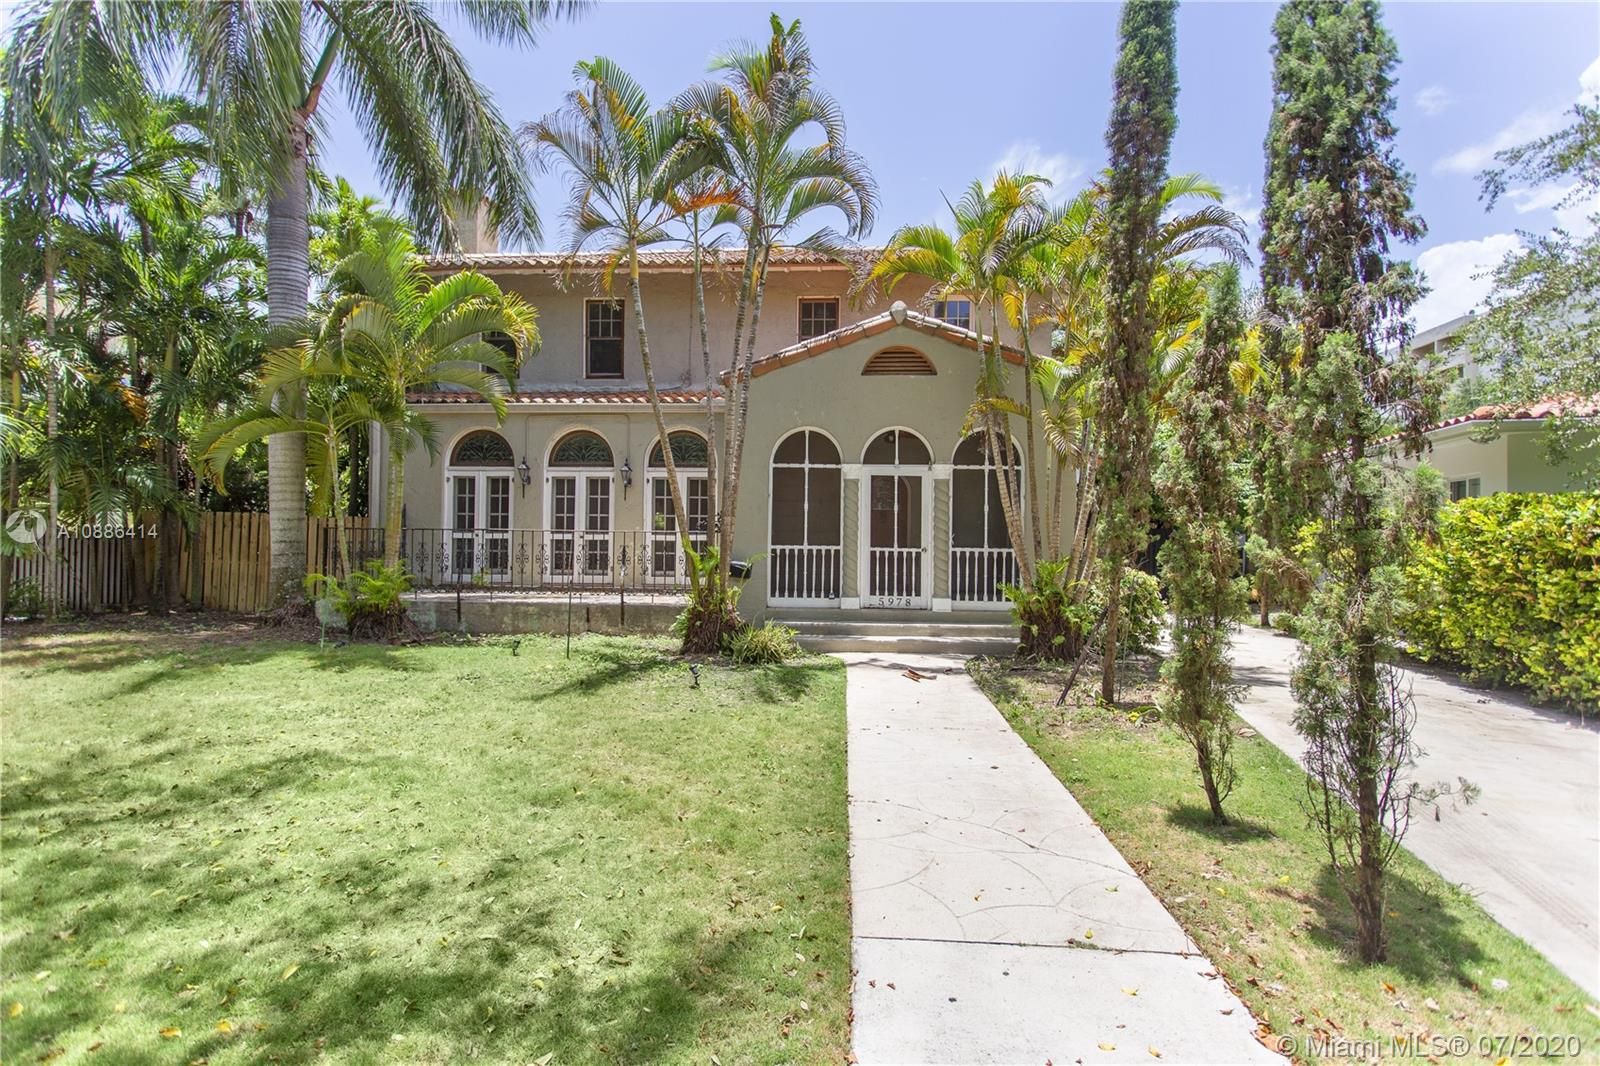 Historical Home in a gated community Two Story home  and a guest house.  Pool area is complete with hot tub and spacious for entertainment. Home offers plenty of charm. Seller financing available.